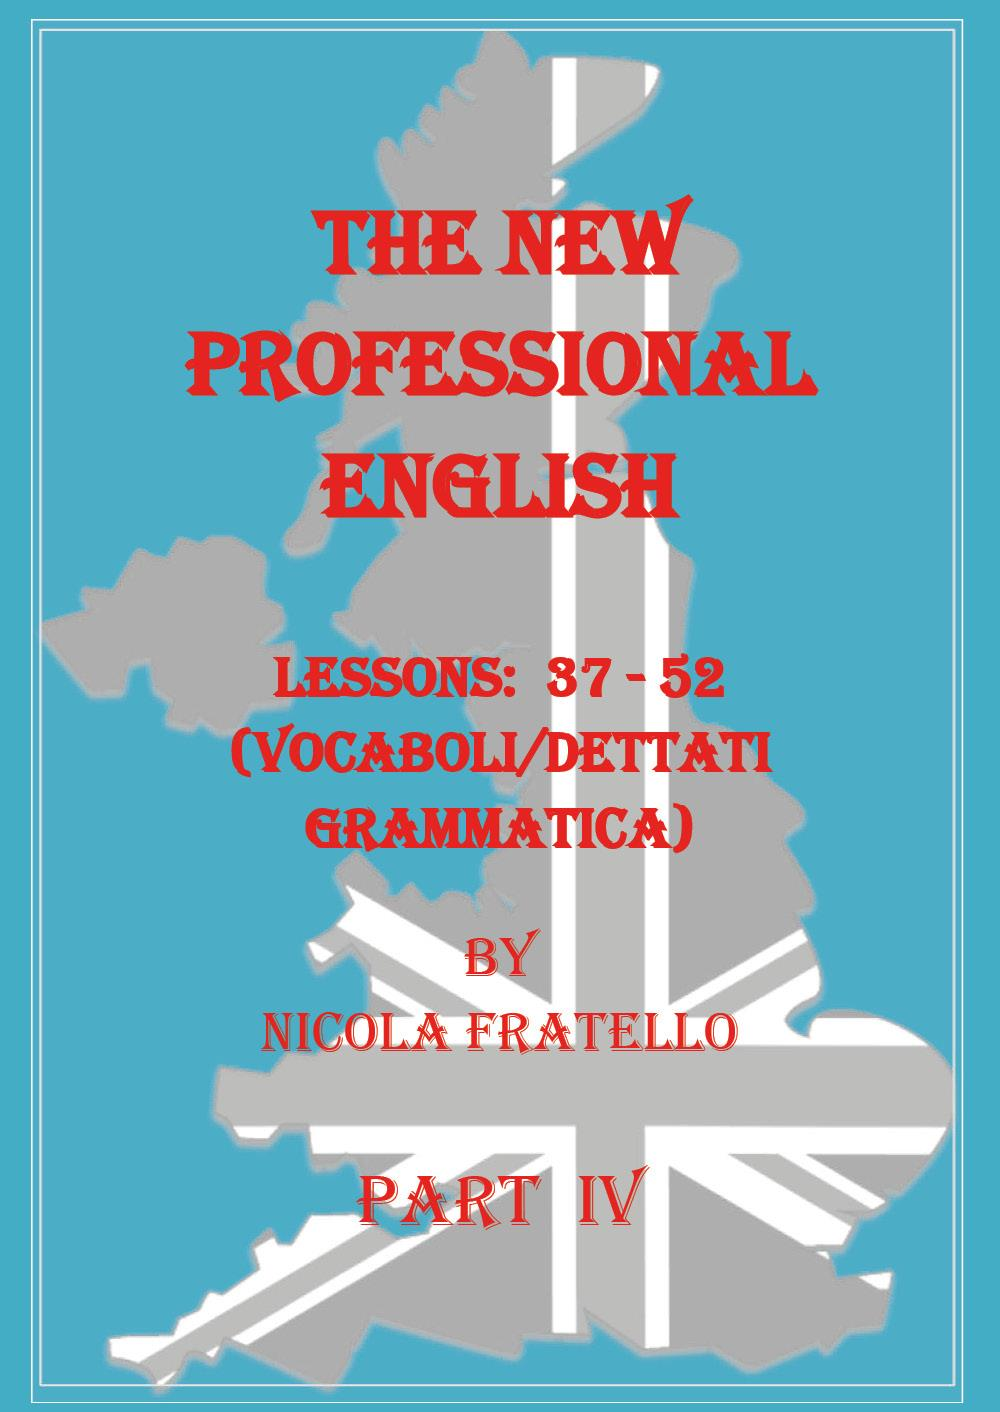 The New Professional English - Part IV